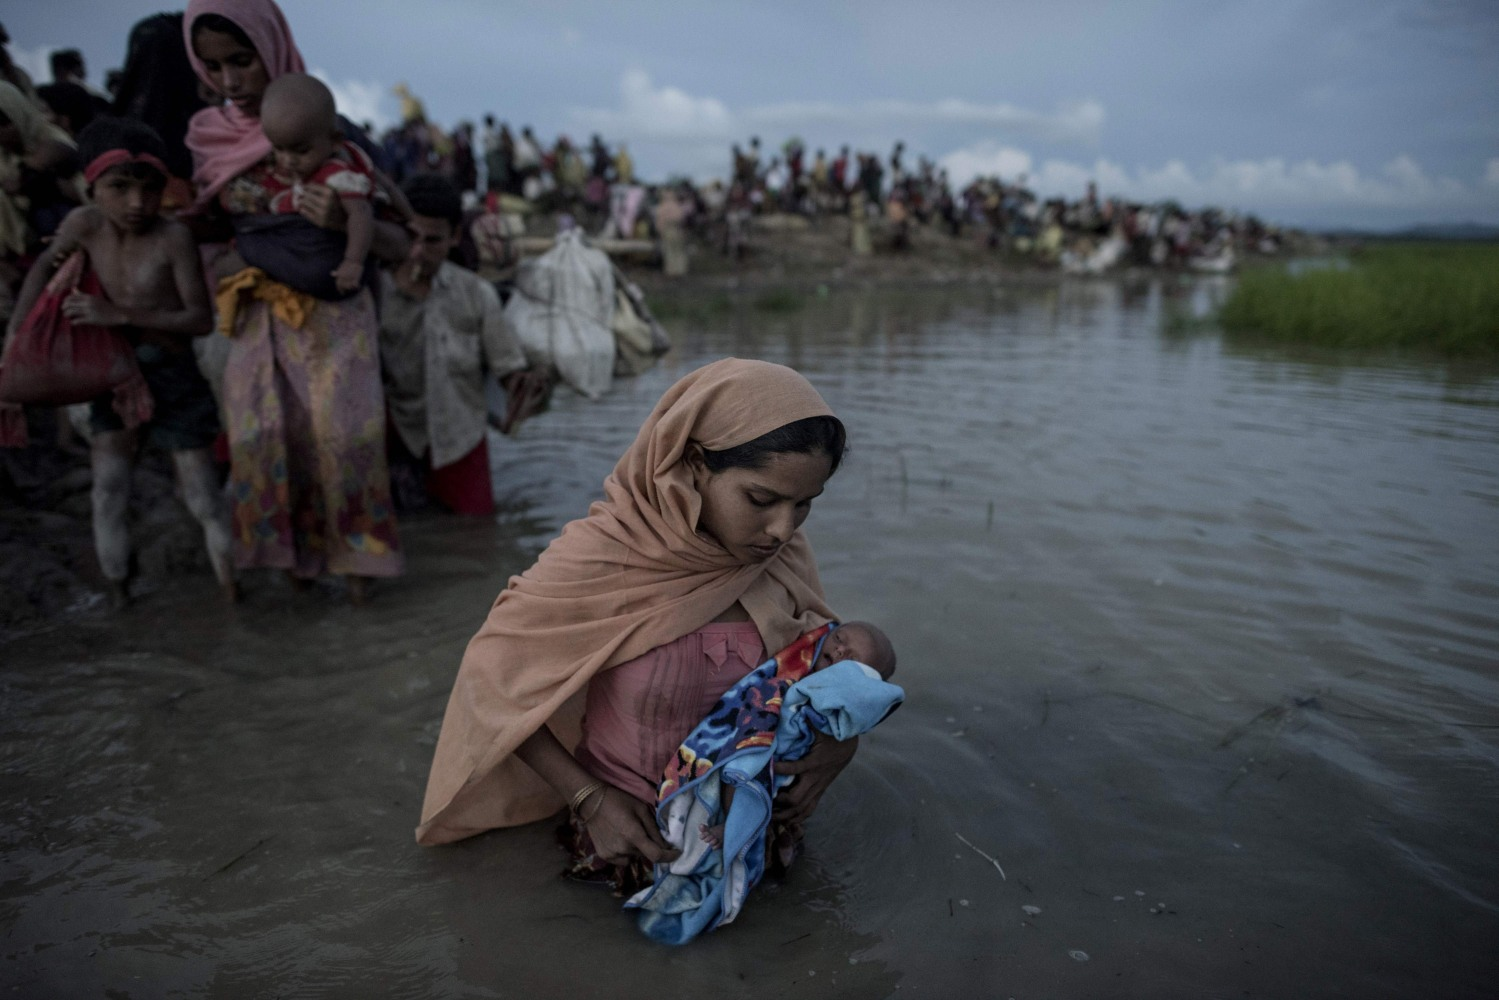 Tillerson: Myanmar clearly 'ethnic cleansing' the Rohingya